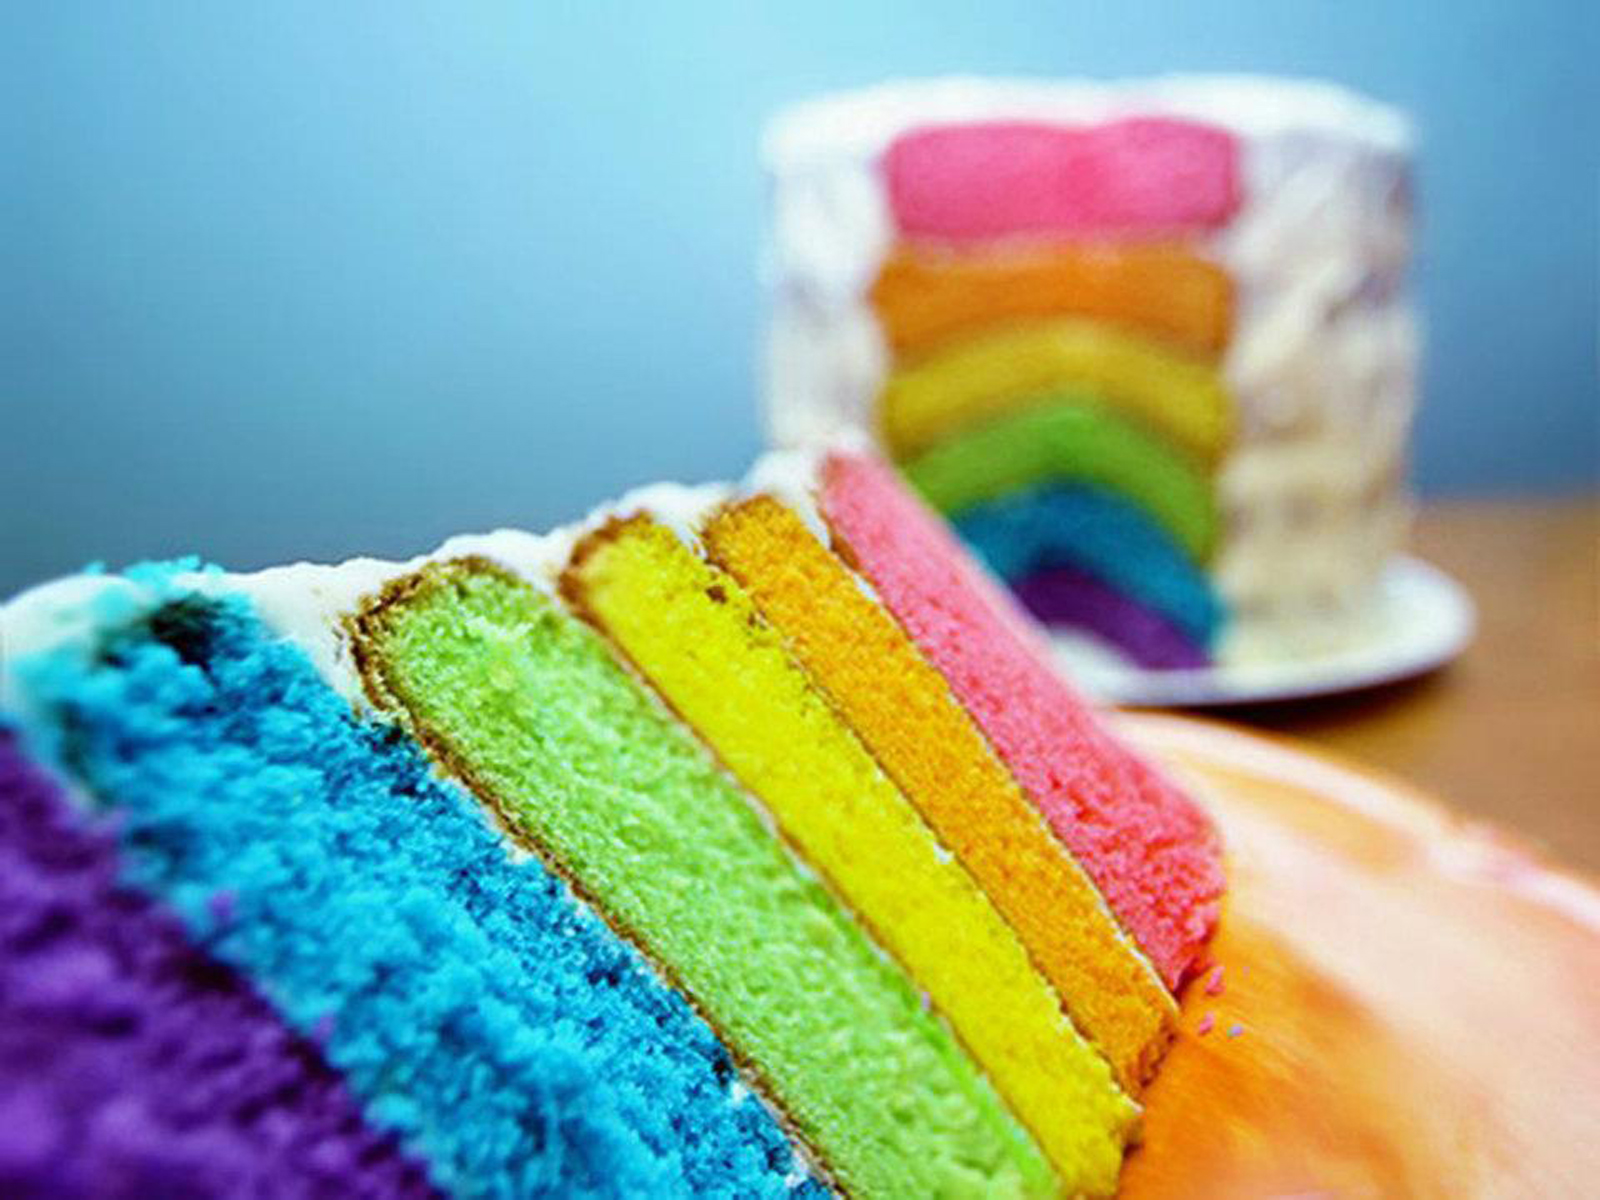 Pictures Of Cake To Colour In : Sweet and Delish Rainbow Cake - Colors Photo (34691726 ...